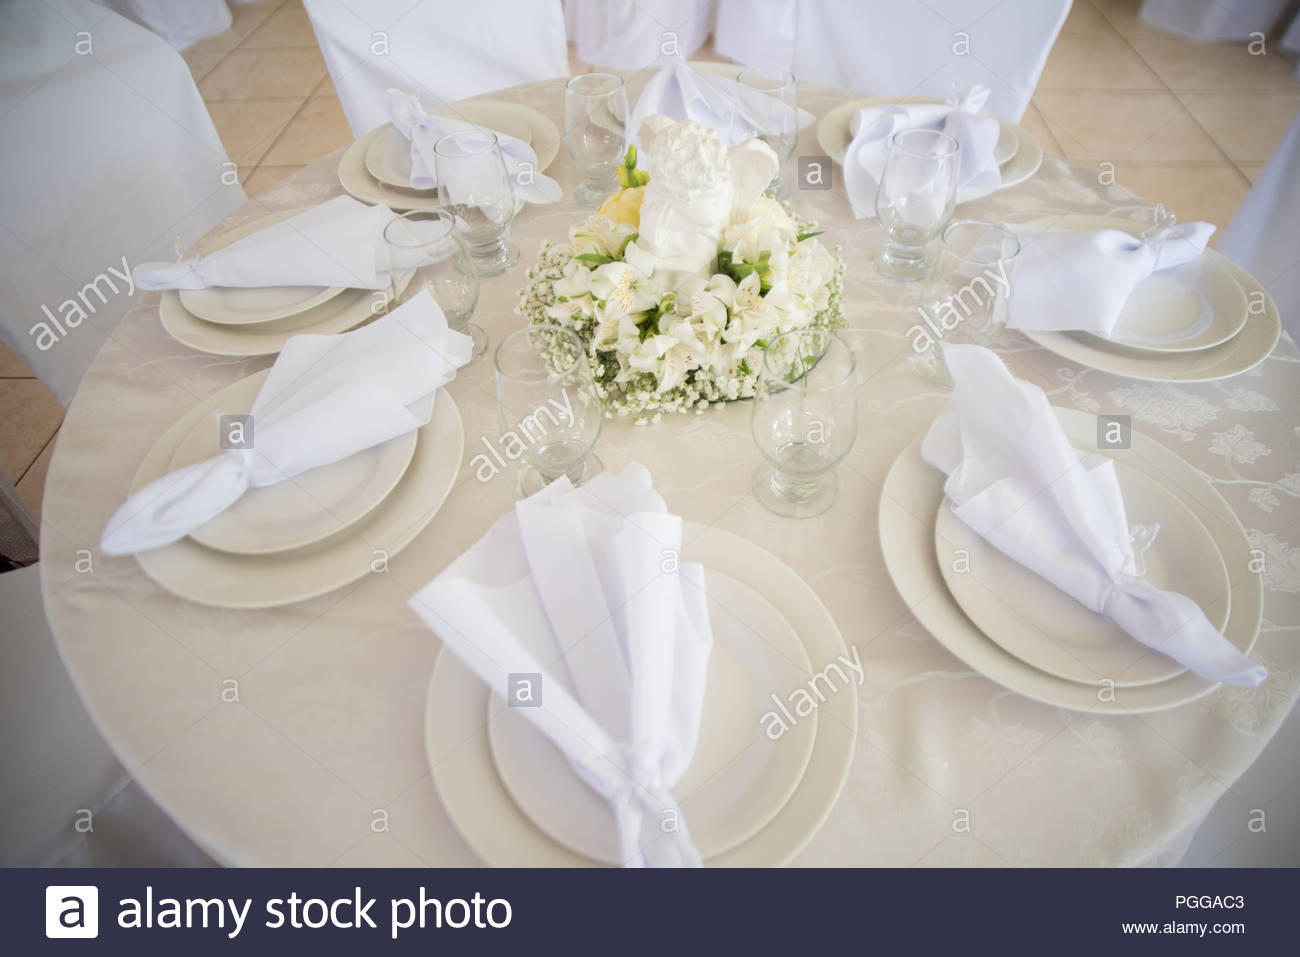 Table for meal - Baptism - Stock Image